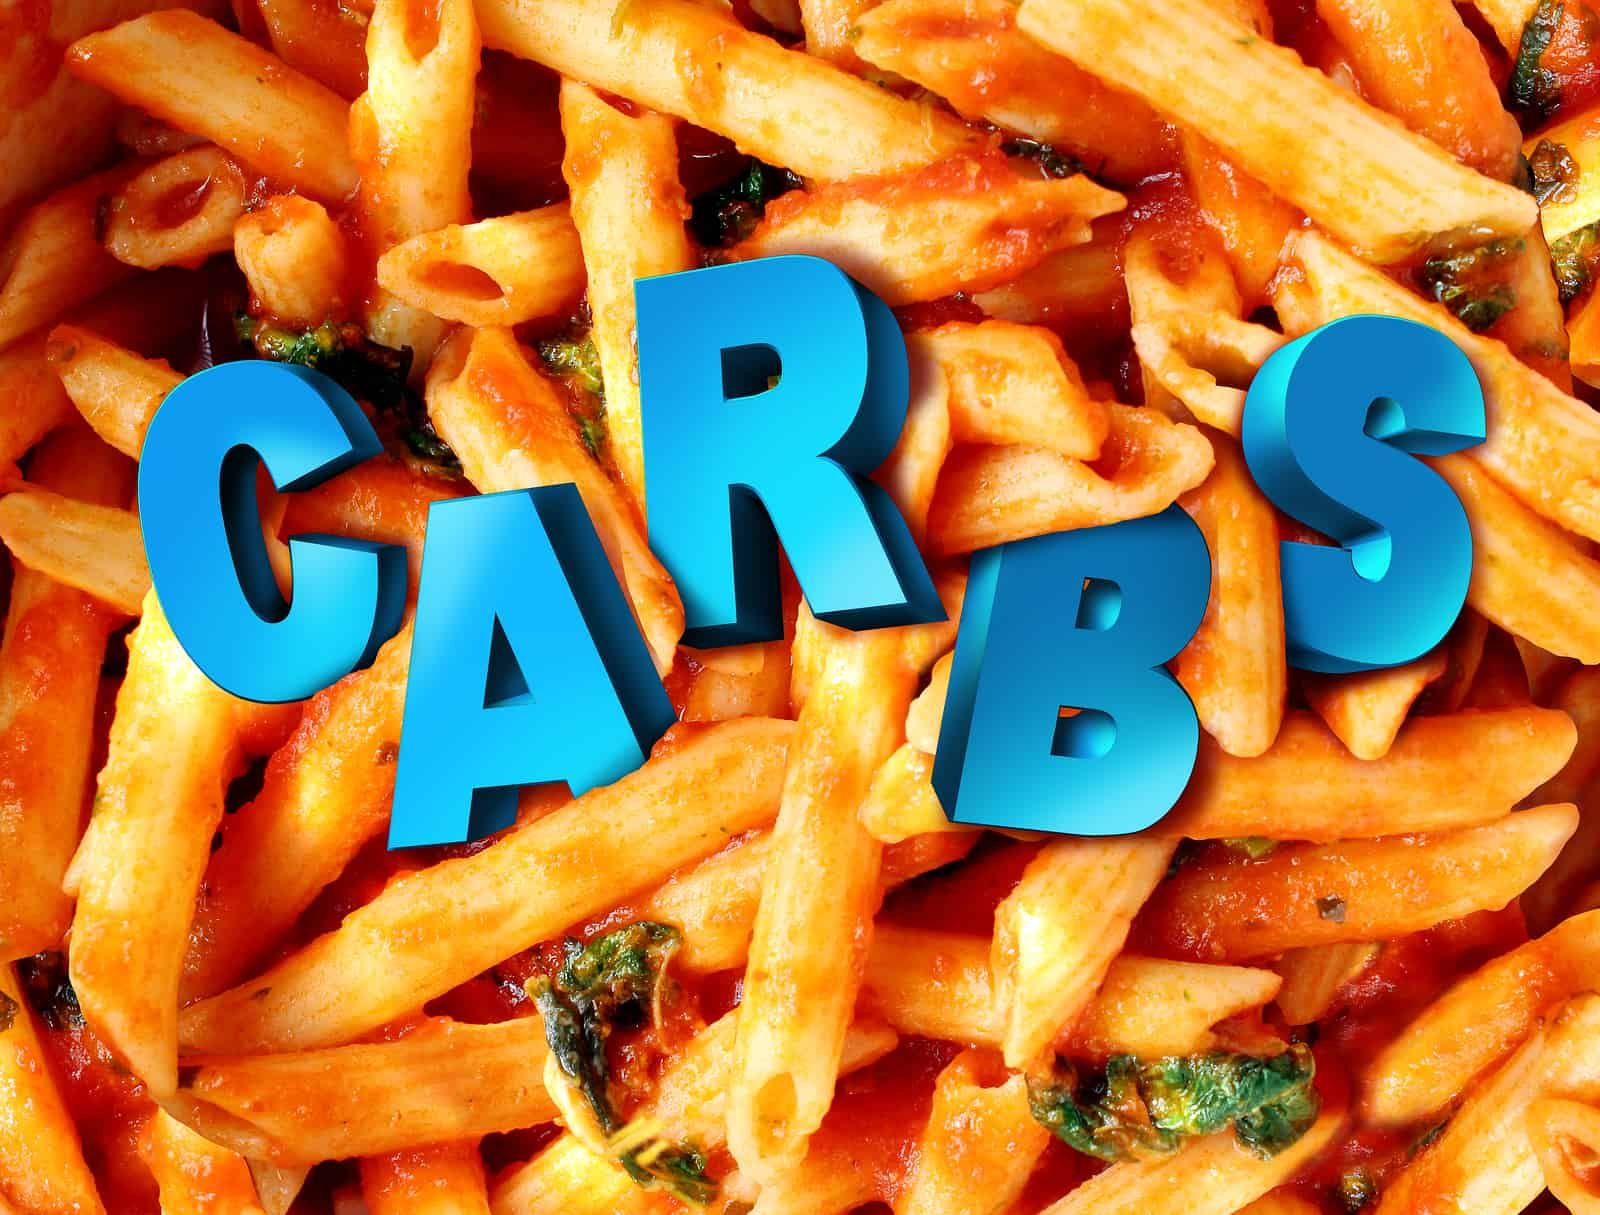 The pros and cons of carbs